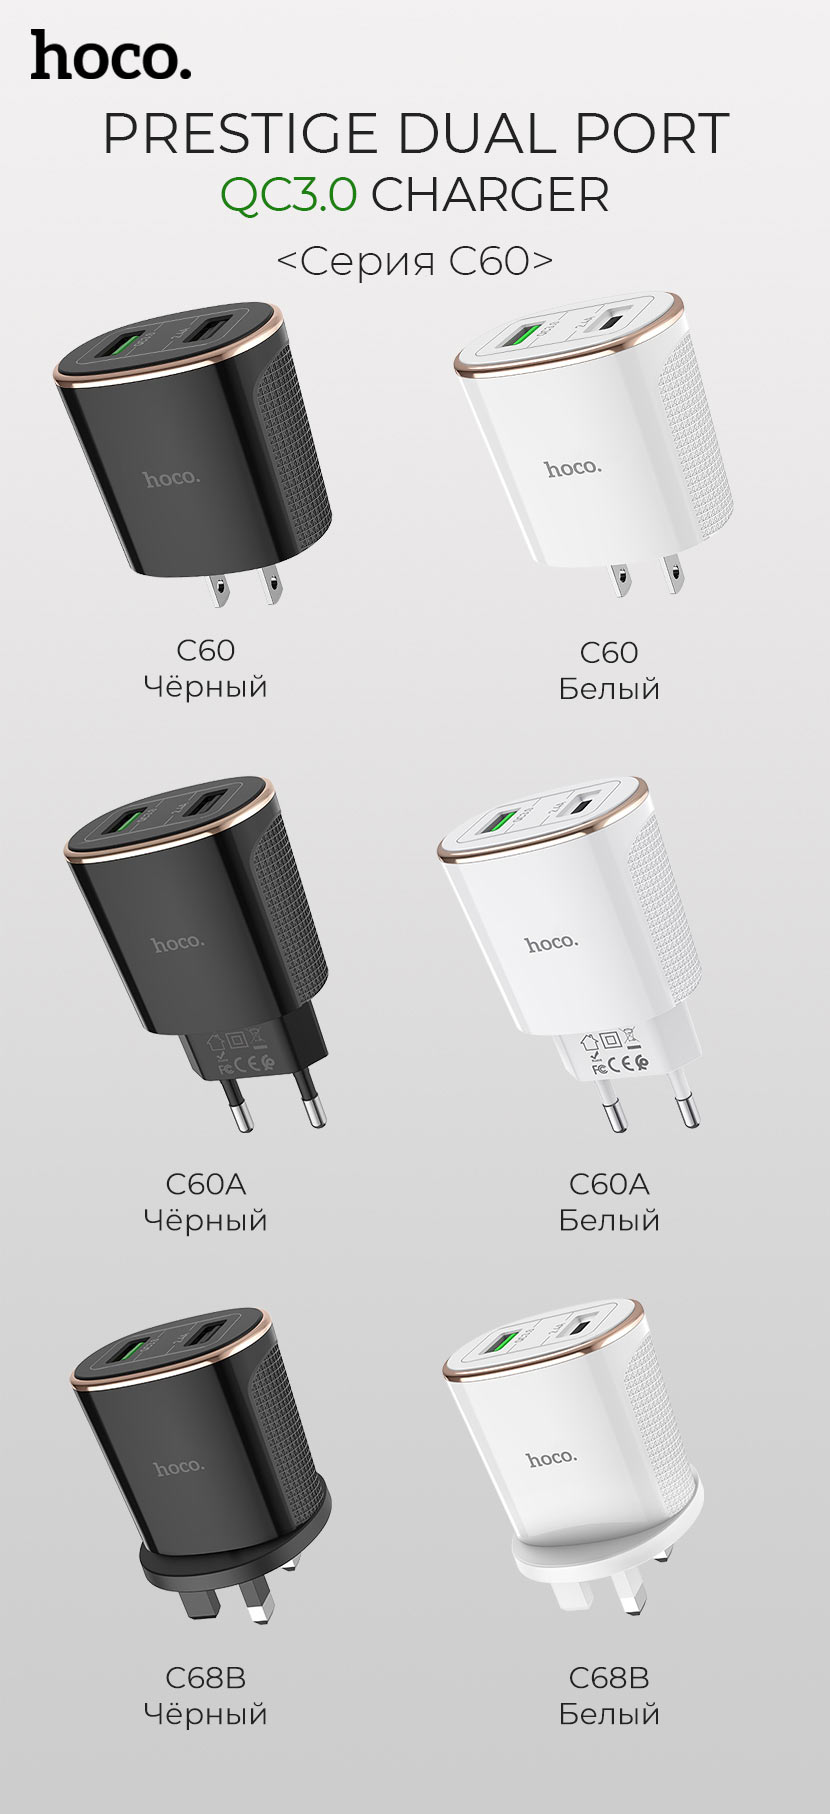 hoco news c60 prestige dual port qc30 charger set ru